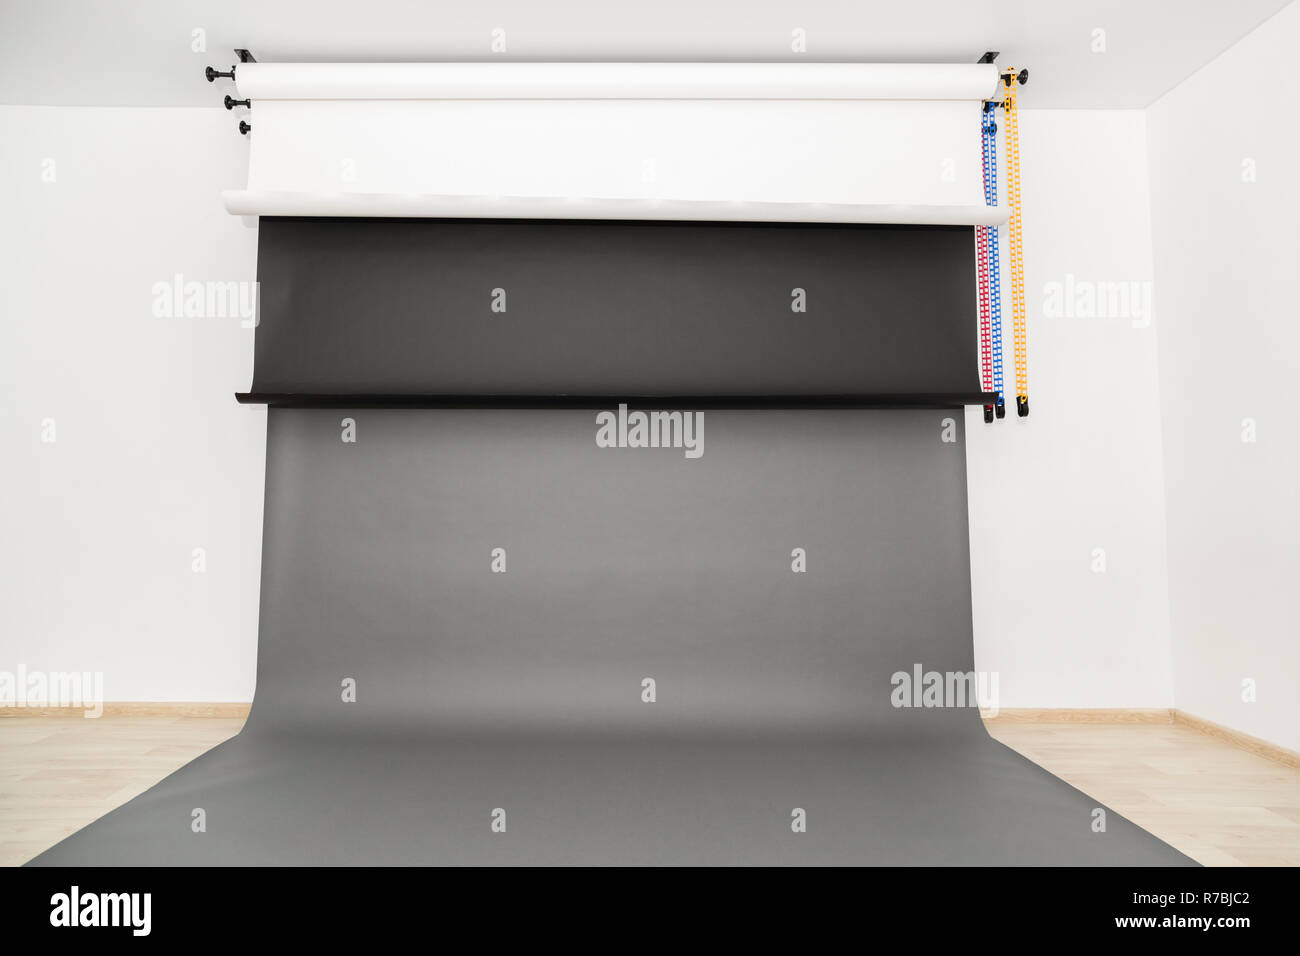 Photo studio at home. New paper backgrounds. - Stock Image